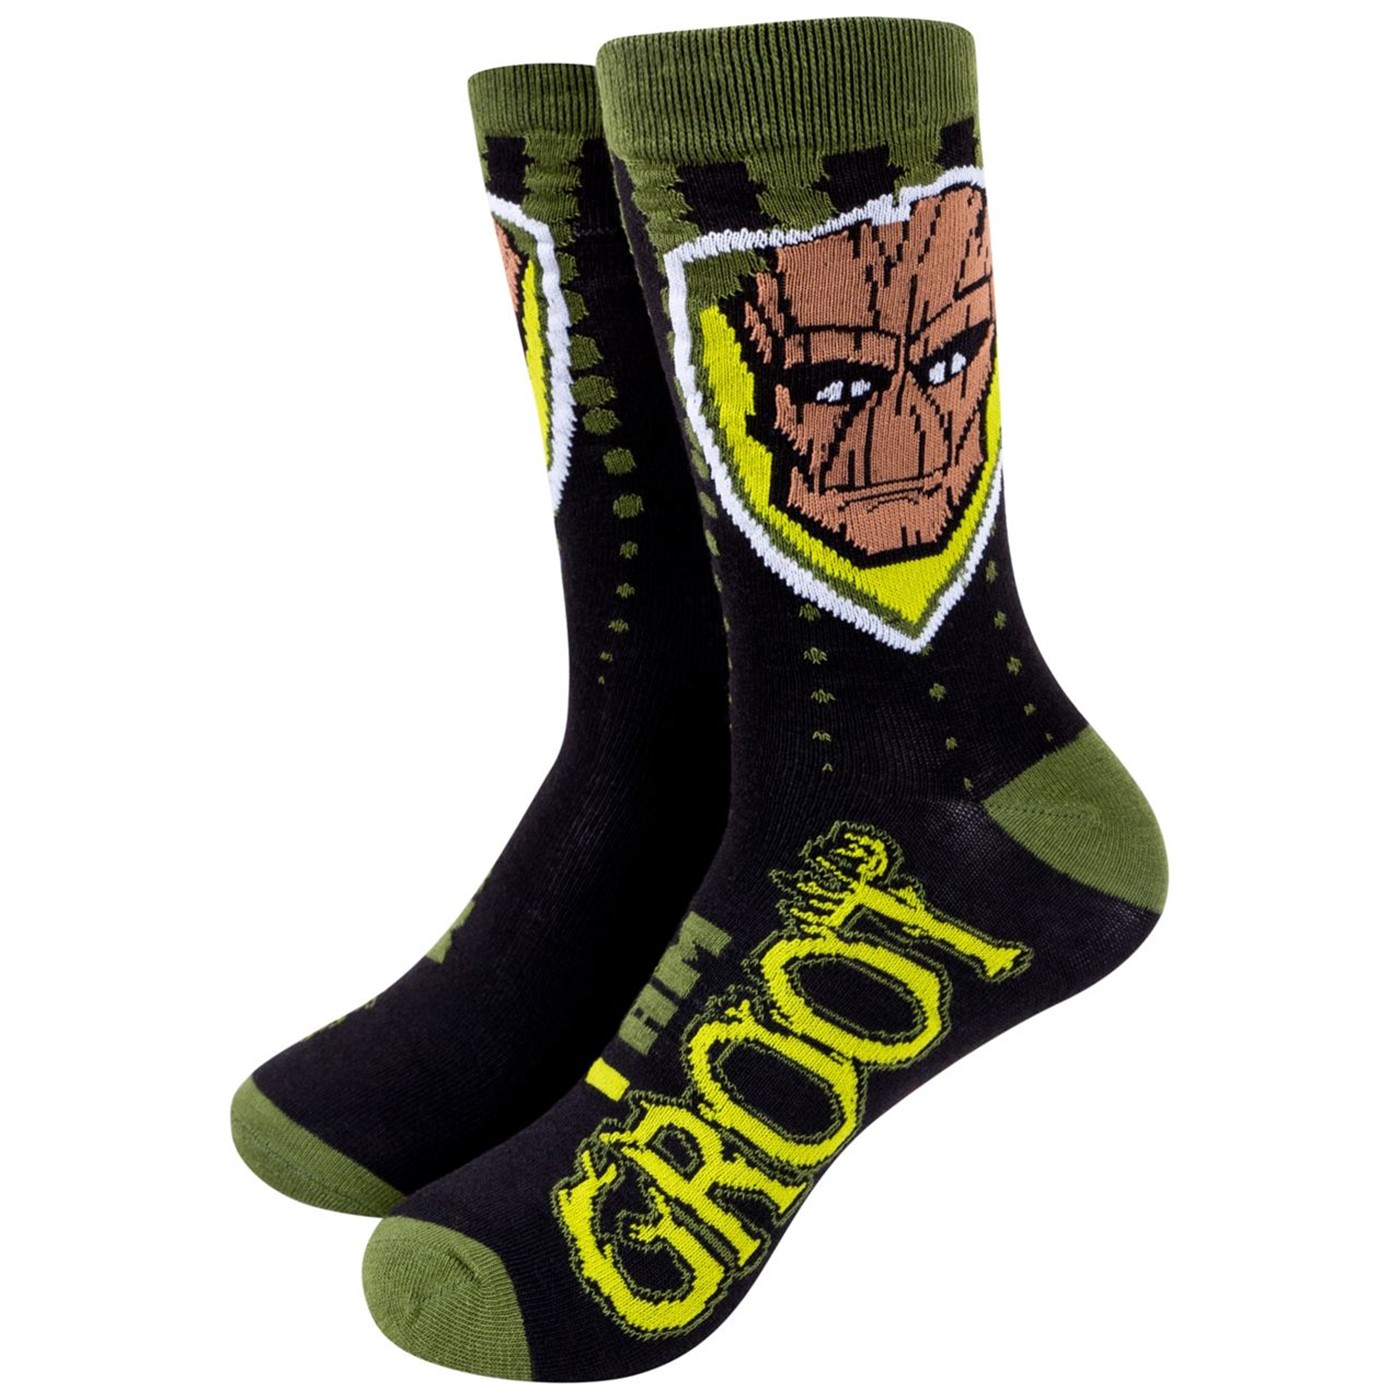 Guardians of the Galaxy Rocket And Groot Crew Socks Two Pack